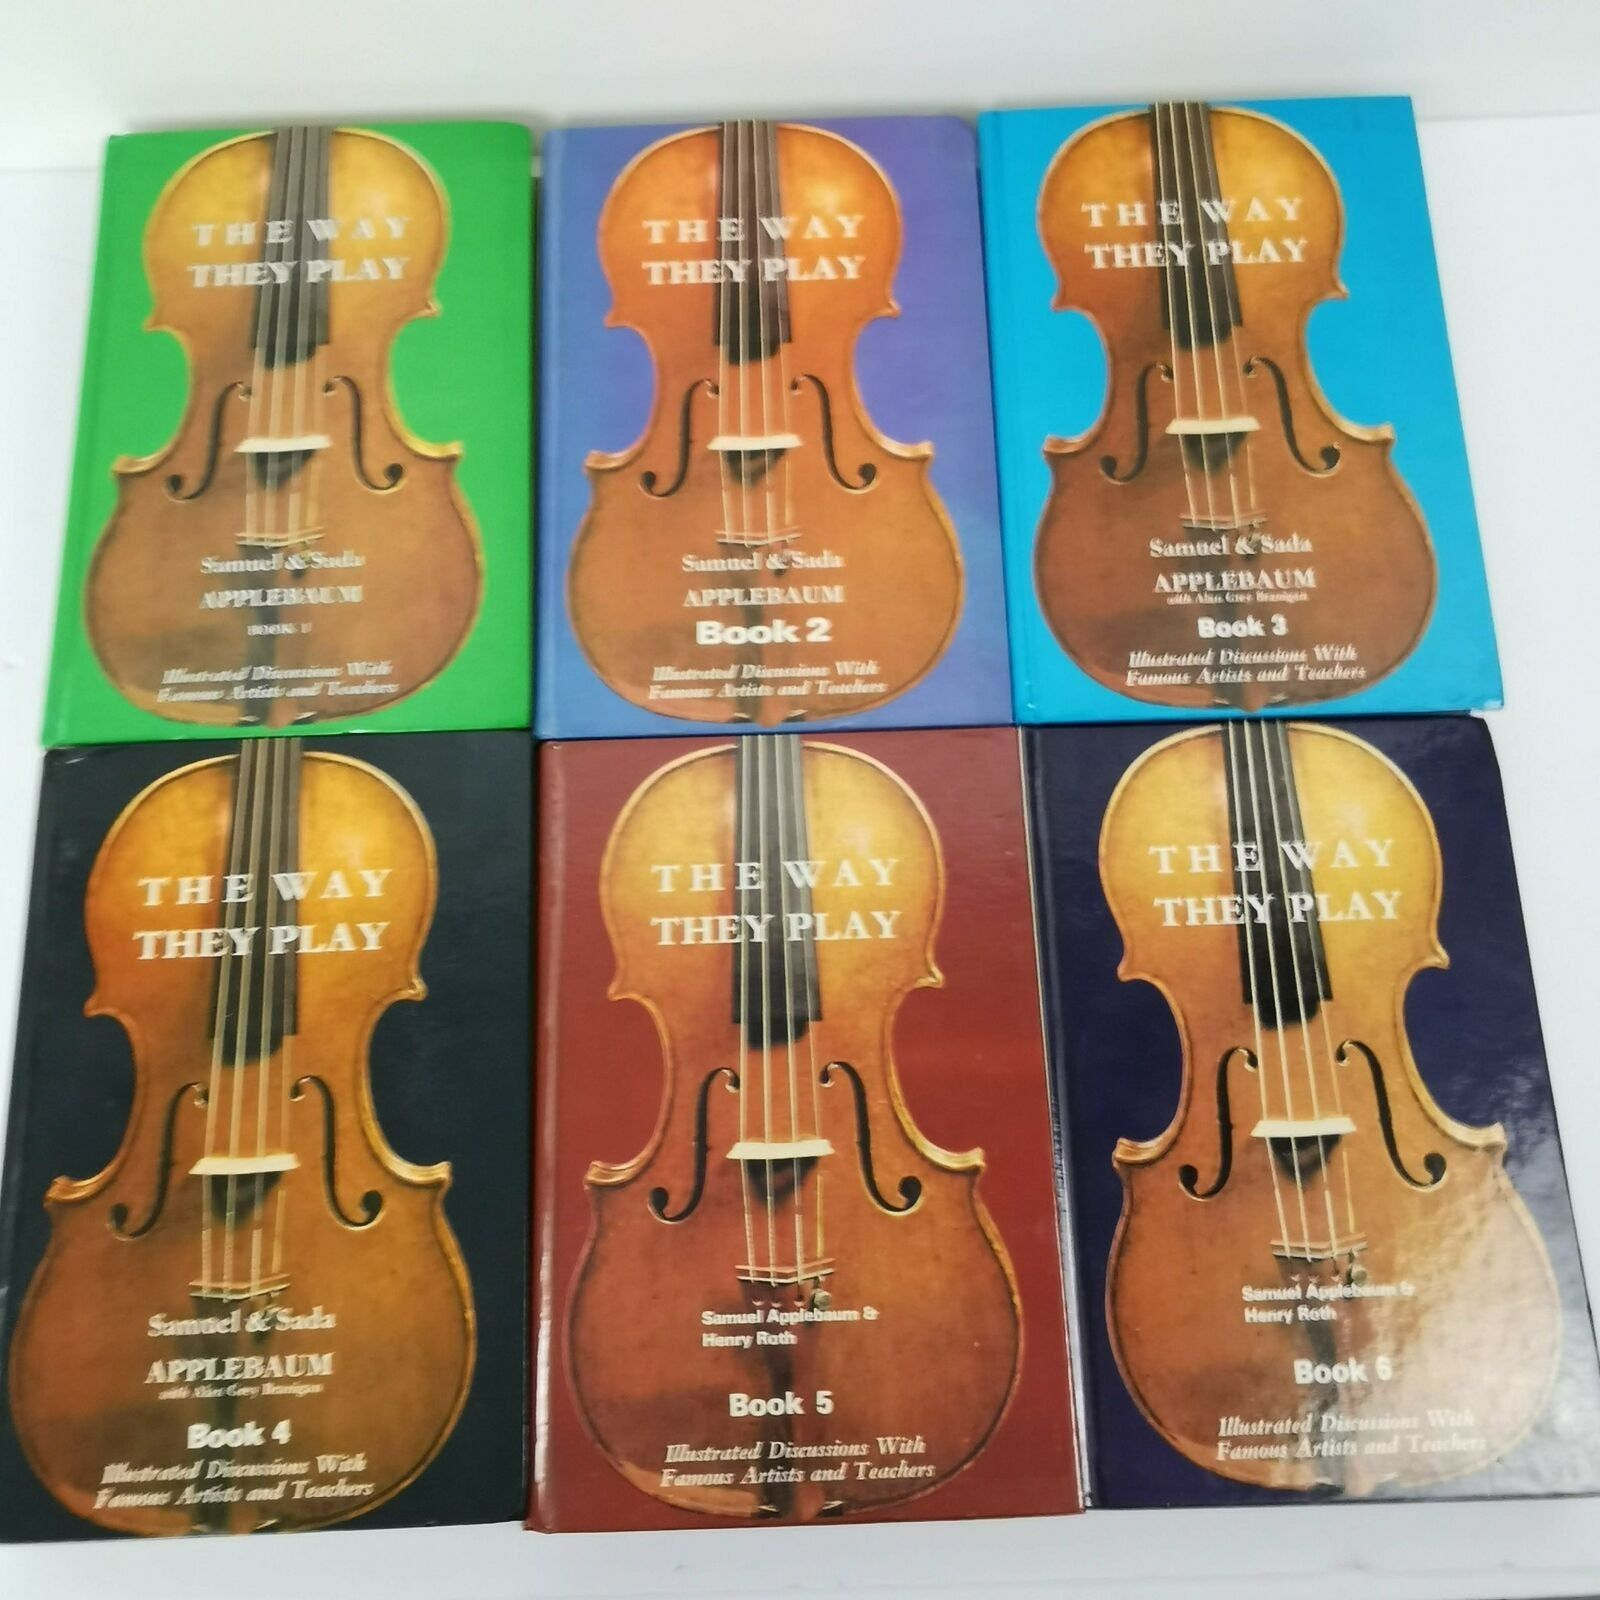 Samuel Applebaum The Way They Play Lot Of 6 Books 1 2 3 4 5 6 Etsy In 2020 Violin Book 1 Books